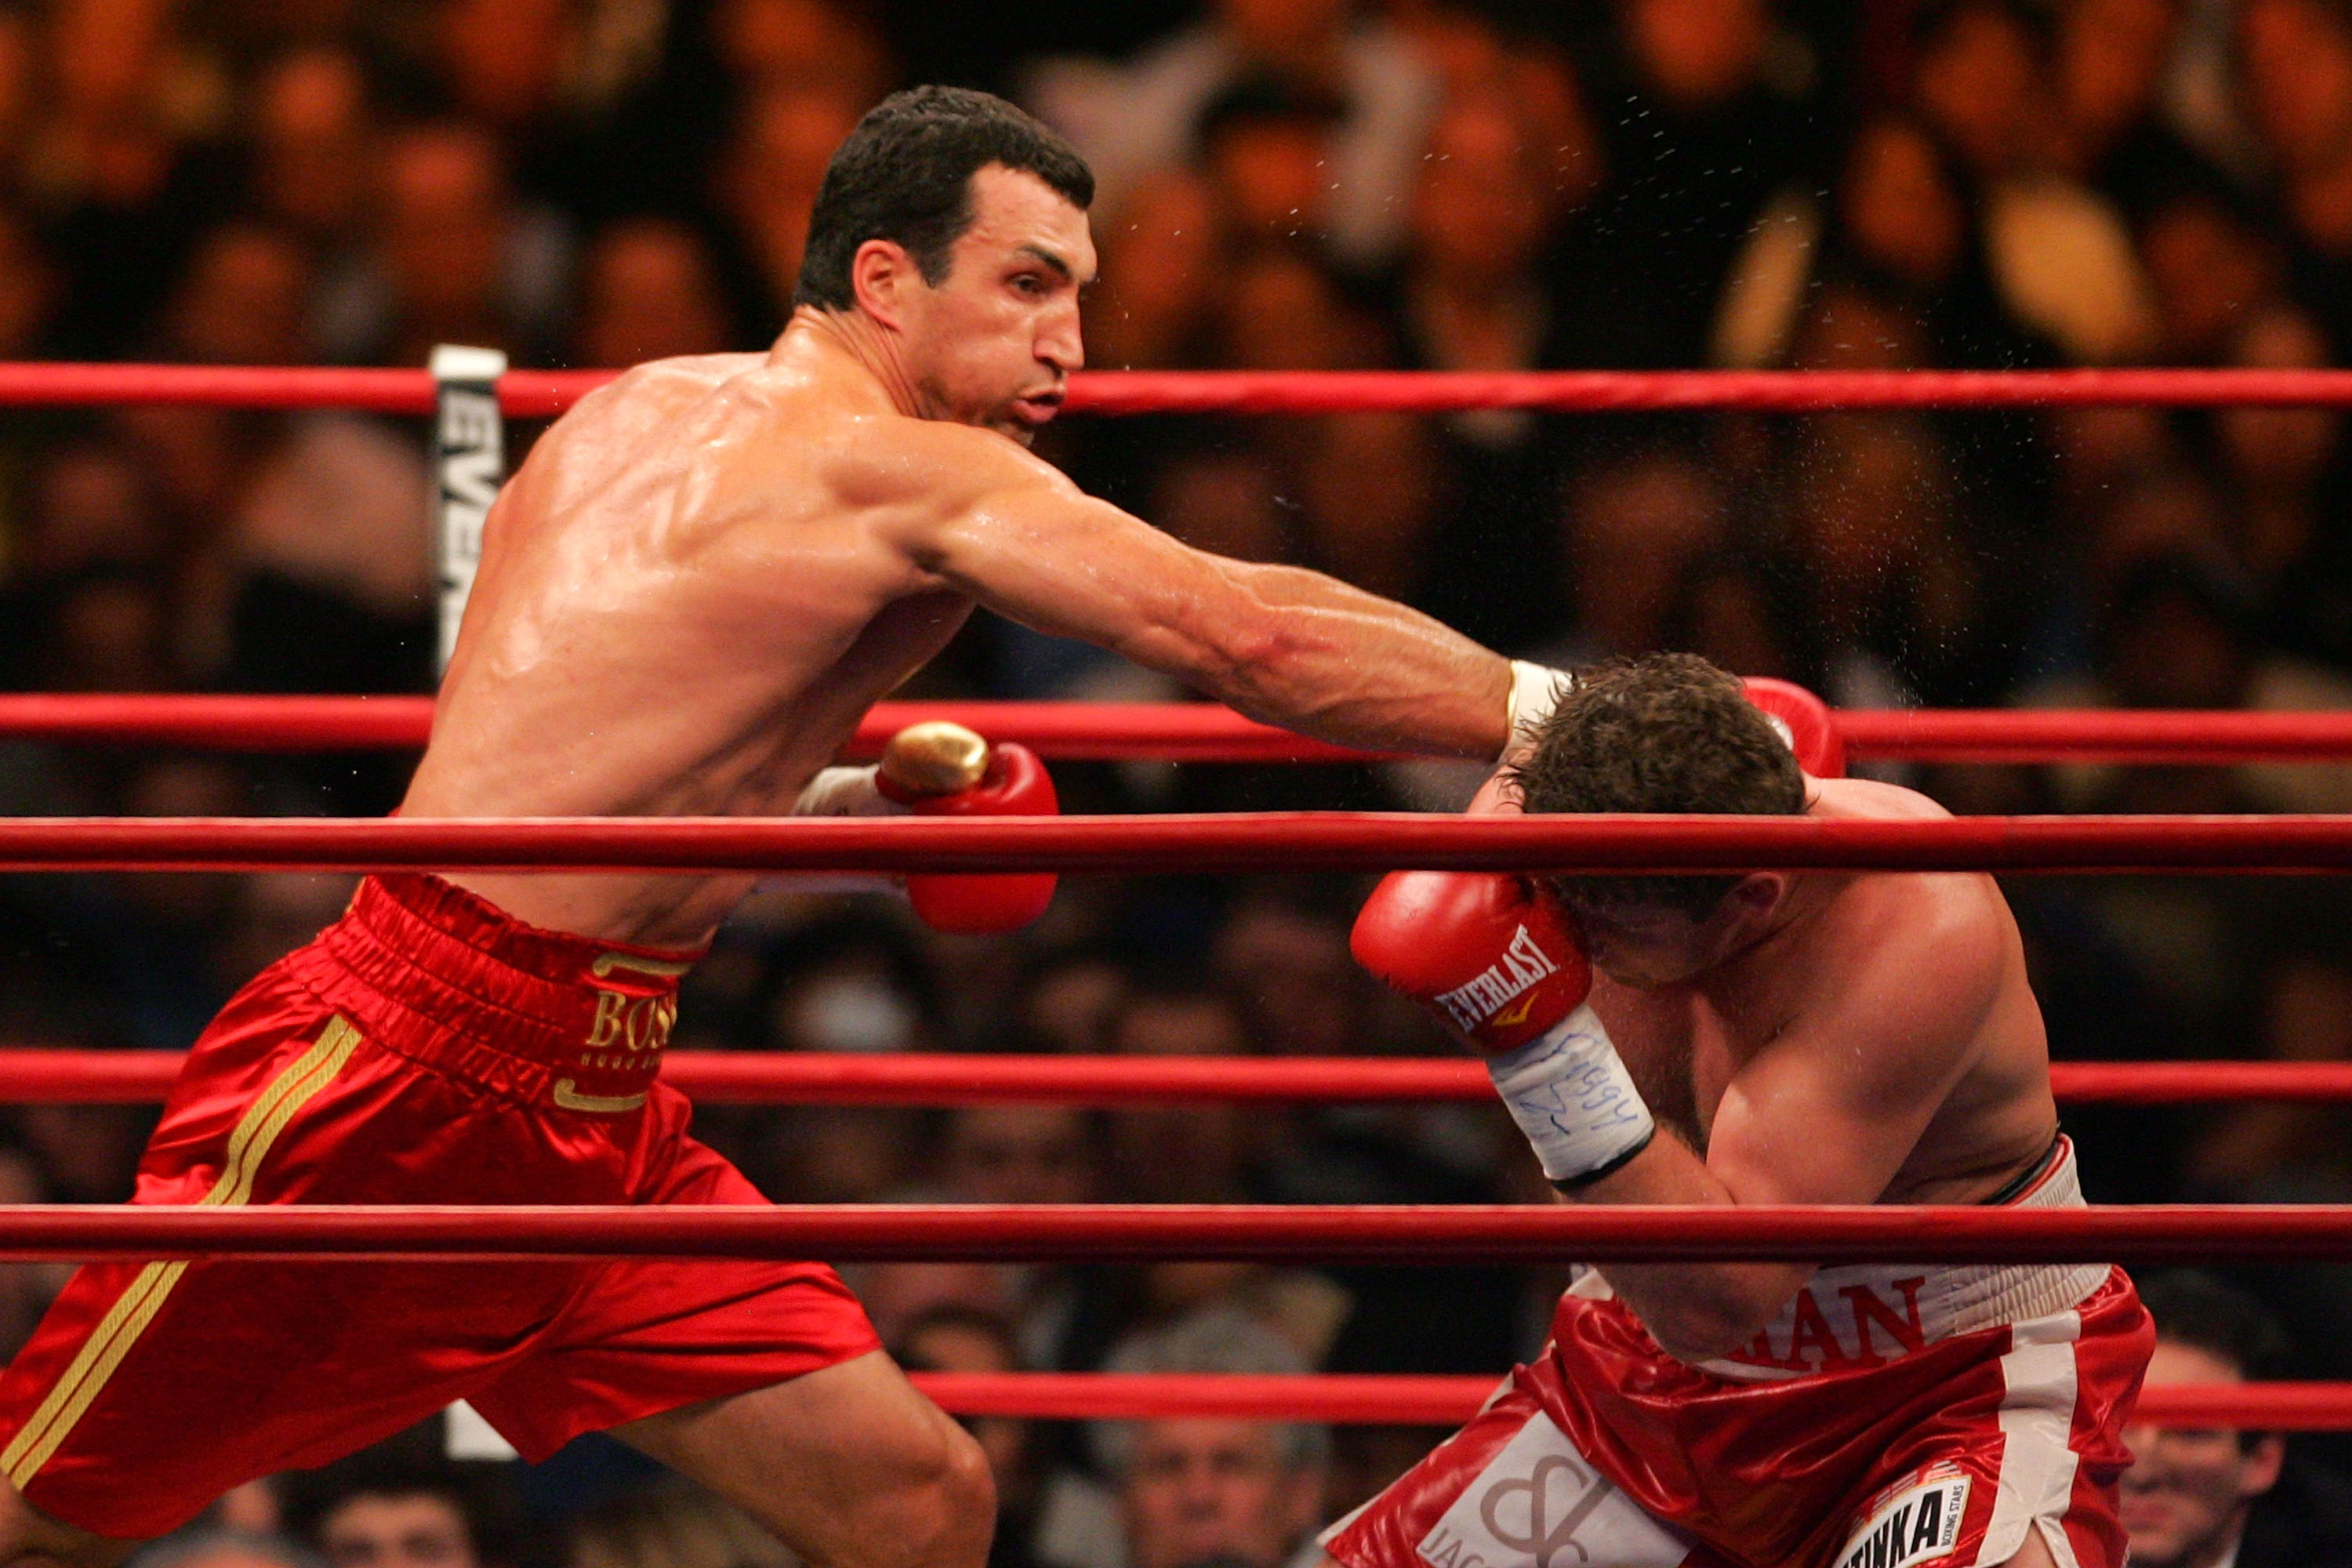 NEW YORK - FEBRUARY 23:  Wladimir Klitschko (L) of Ukraine throws a right to the head of Sultan Ibragimov (R) of Russia during their WBO and IBF/IBO Unification Heavyweight World Championship bout on February 23, 2008 at Madison Square Garden in New York